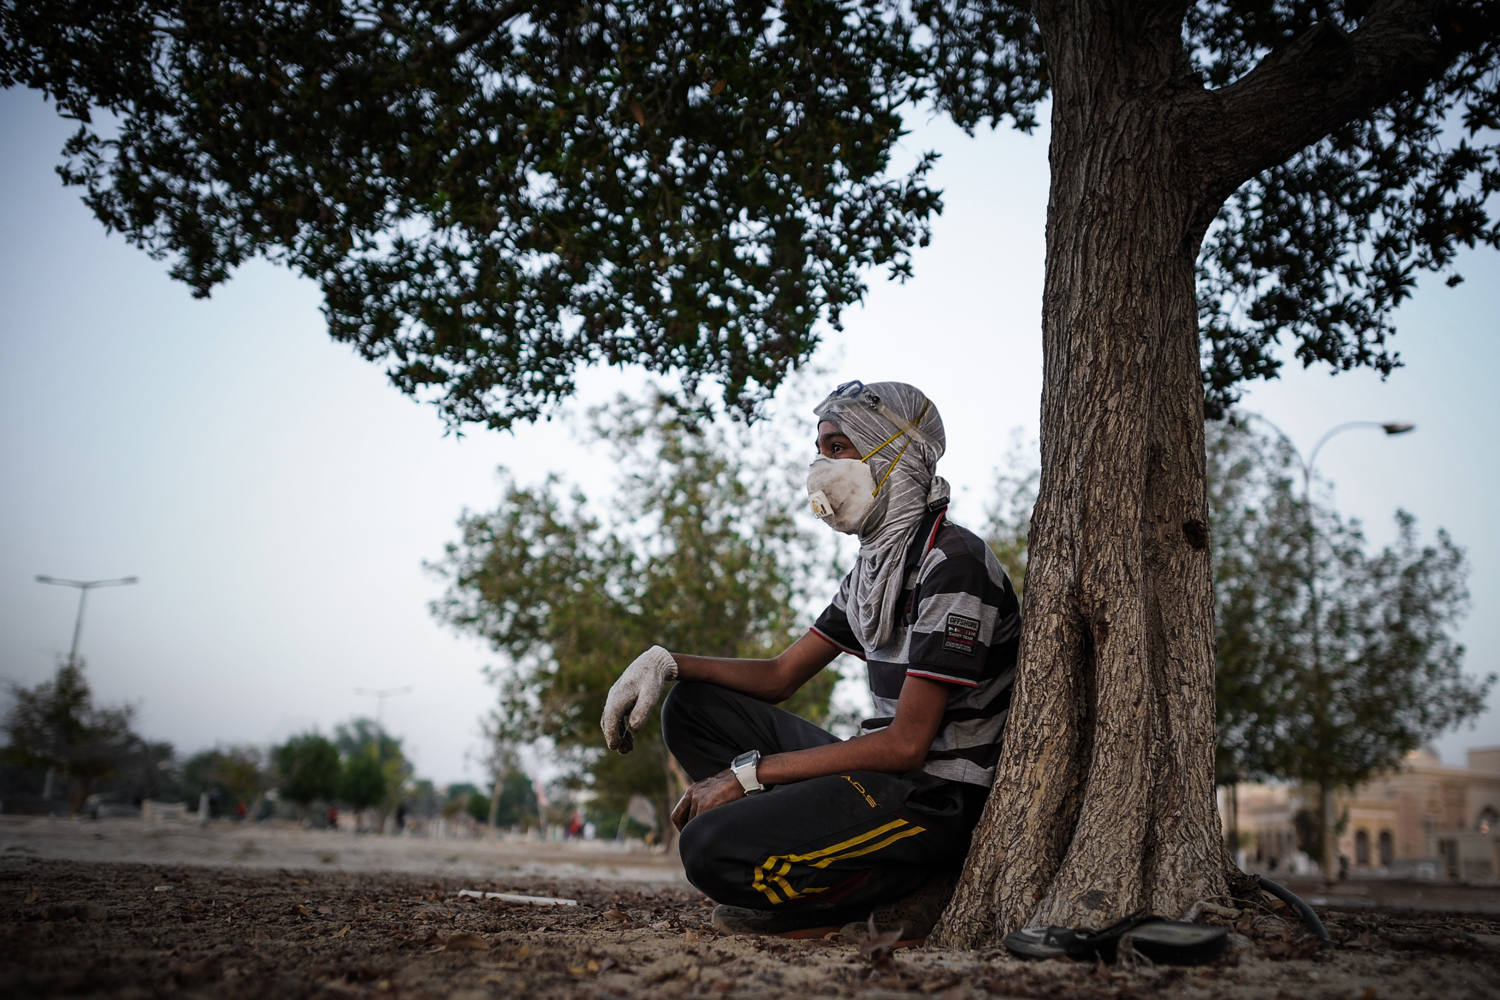 Aug. 15, 2013. A Bahraini protestor sits next to a tree to rest during the clashes with riot police following an anti-regime protest in the village of Abu Saiba, west of Manama.